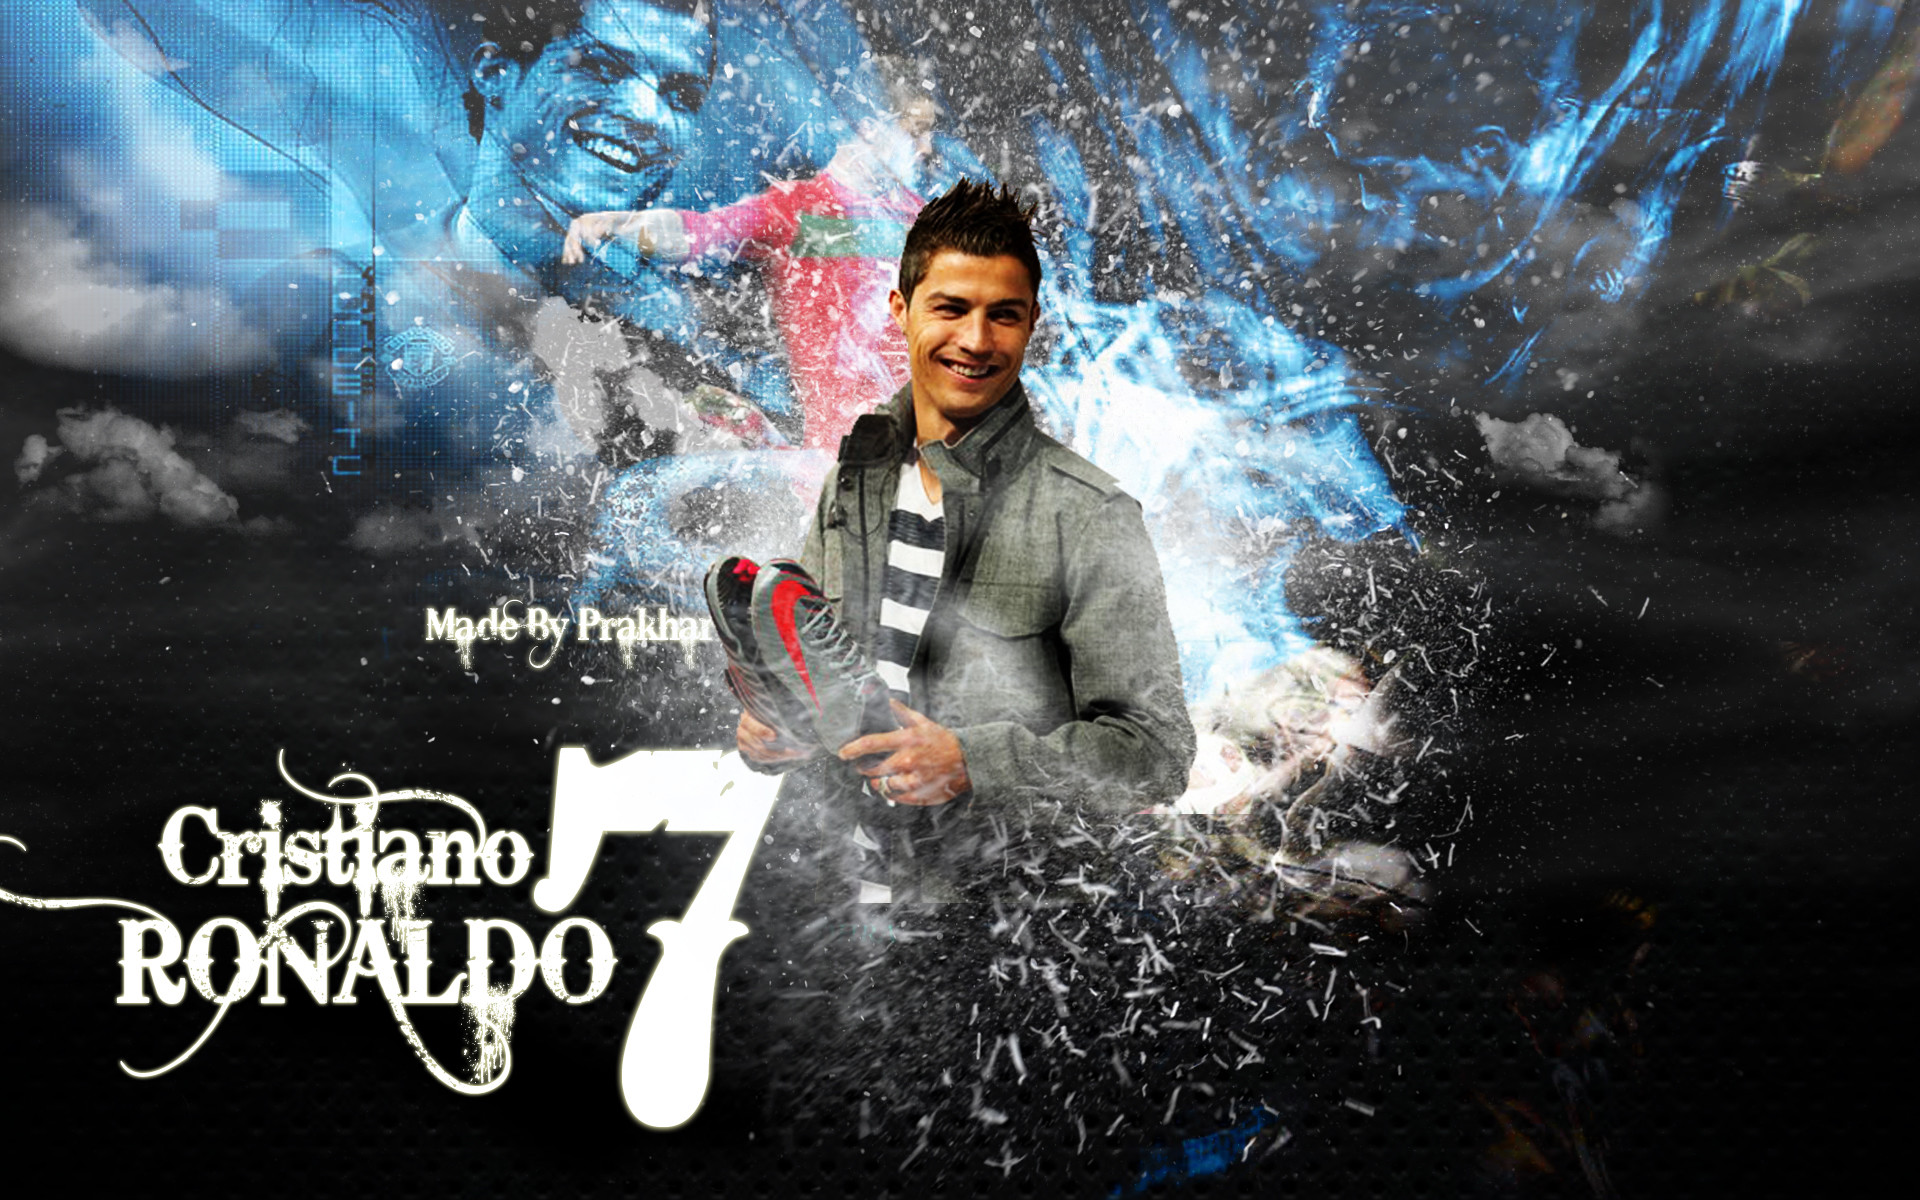 1920x1200 cristiano ronaldo real madrid wallpaper free download wallpaper download  free background images mac desktop wallpapers amazing high definition 4k  1920×1200 ...